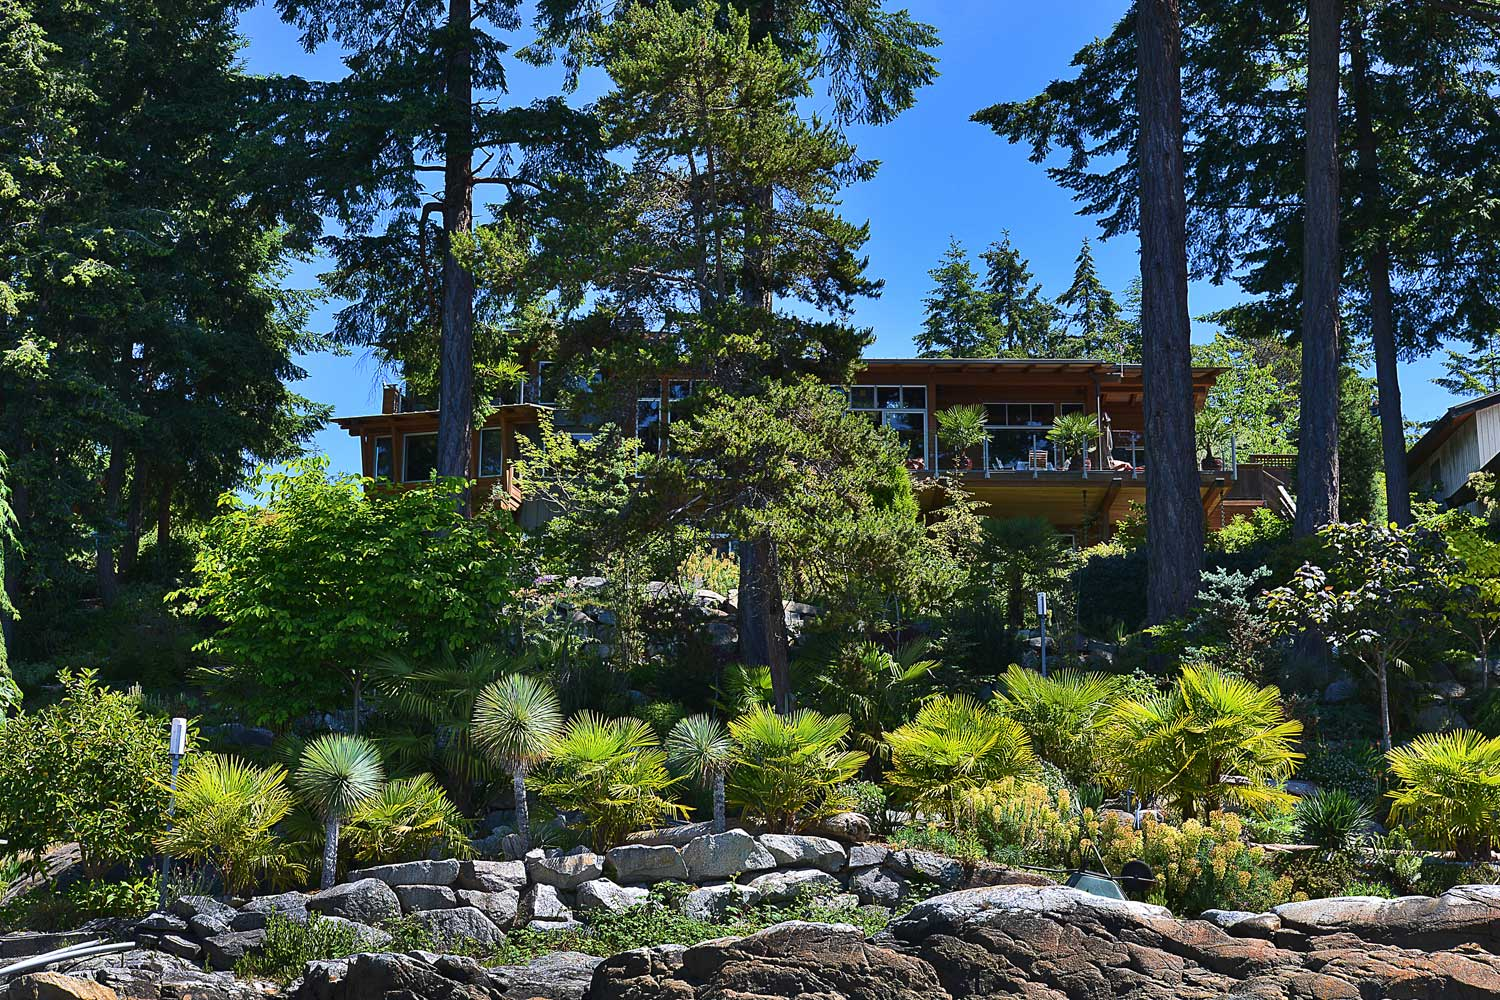 View from the shoreline of the 4 bedroom home for rent near Pender Harbour and its beautiful garden at John Henry's Resort.